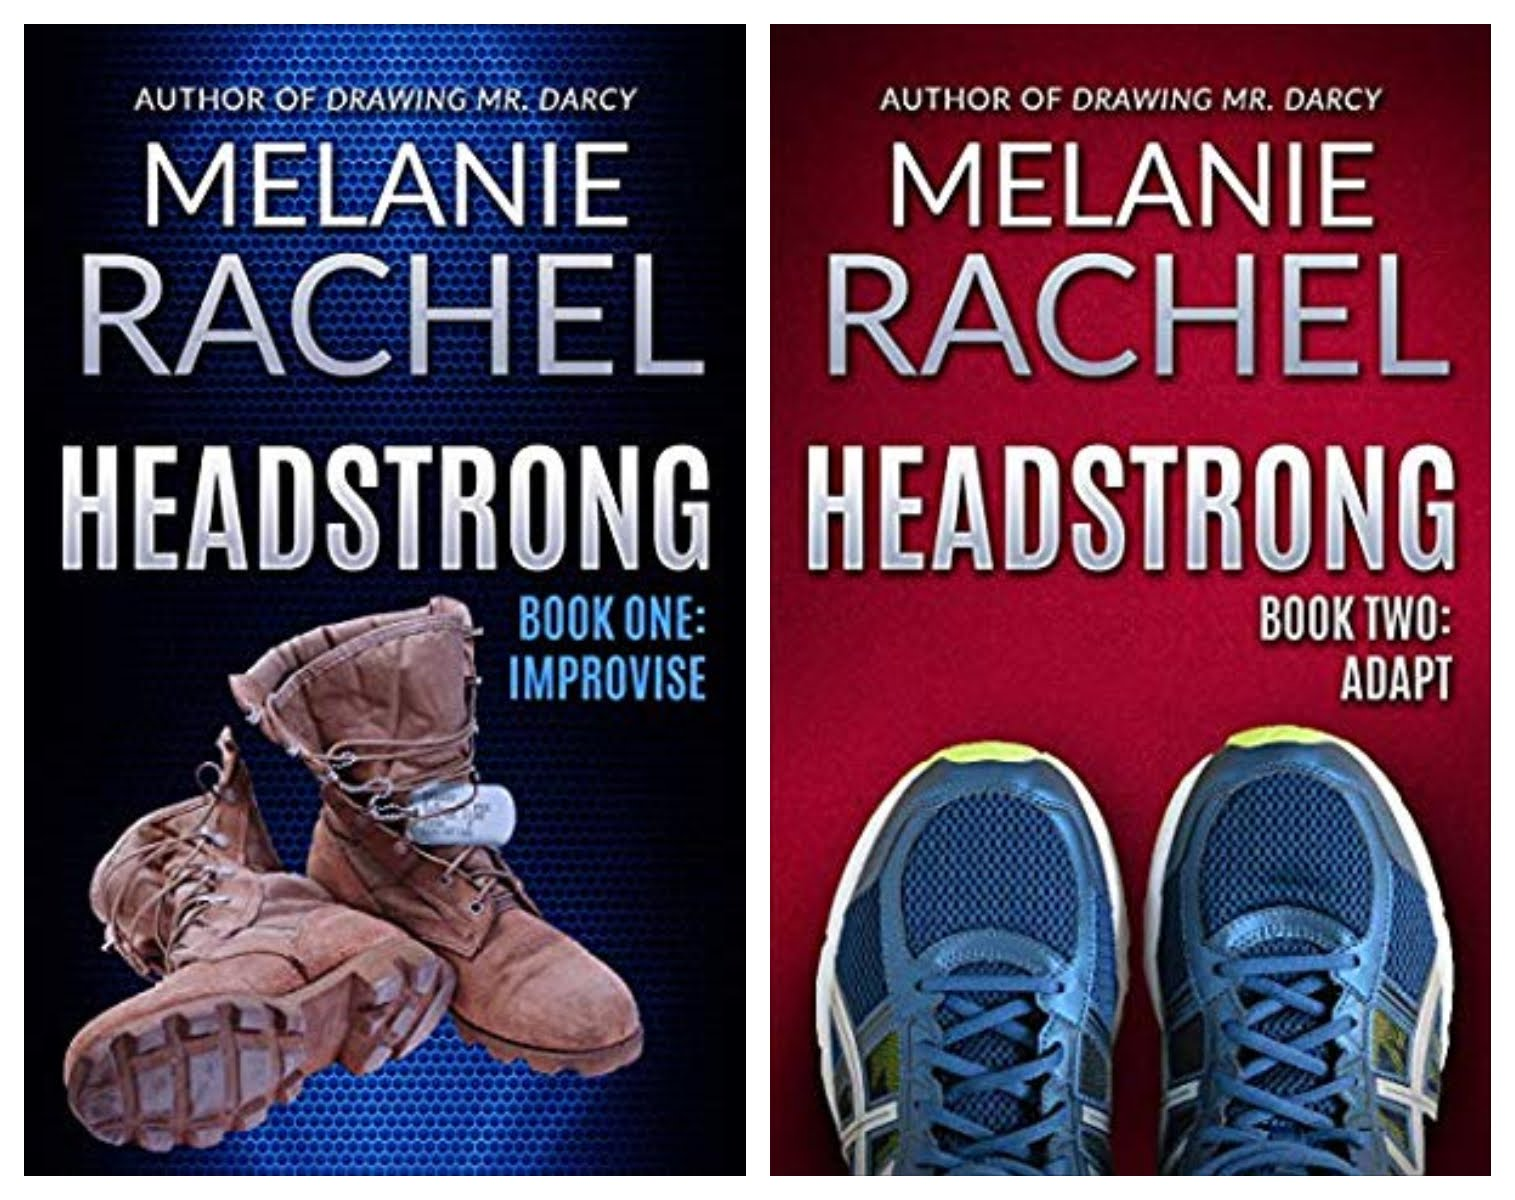 Headstrong Books One and Two by Melanie Rachel